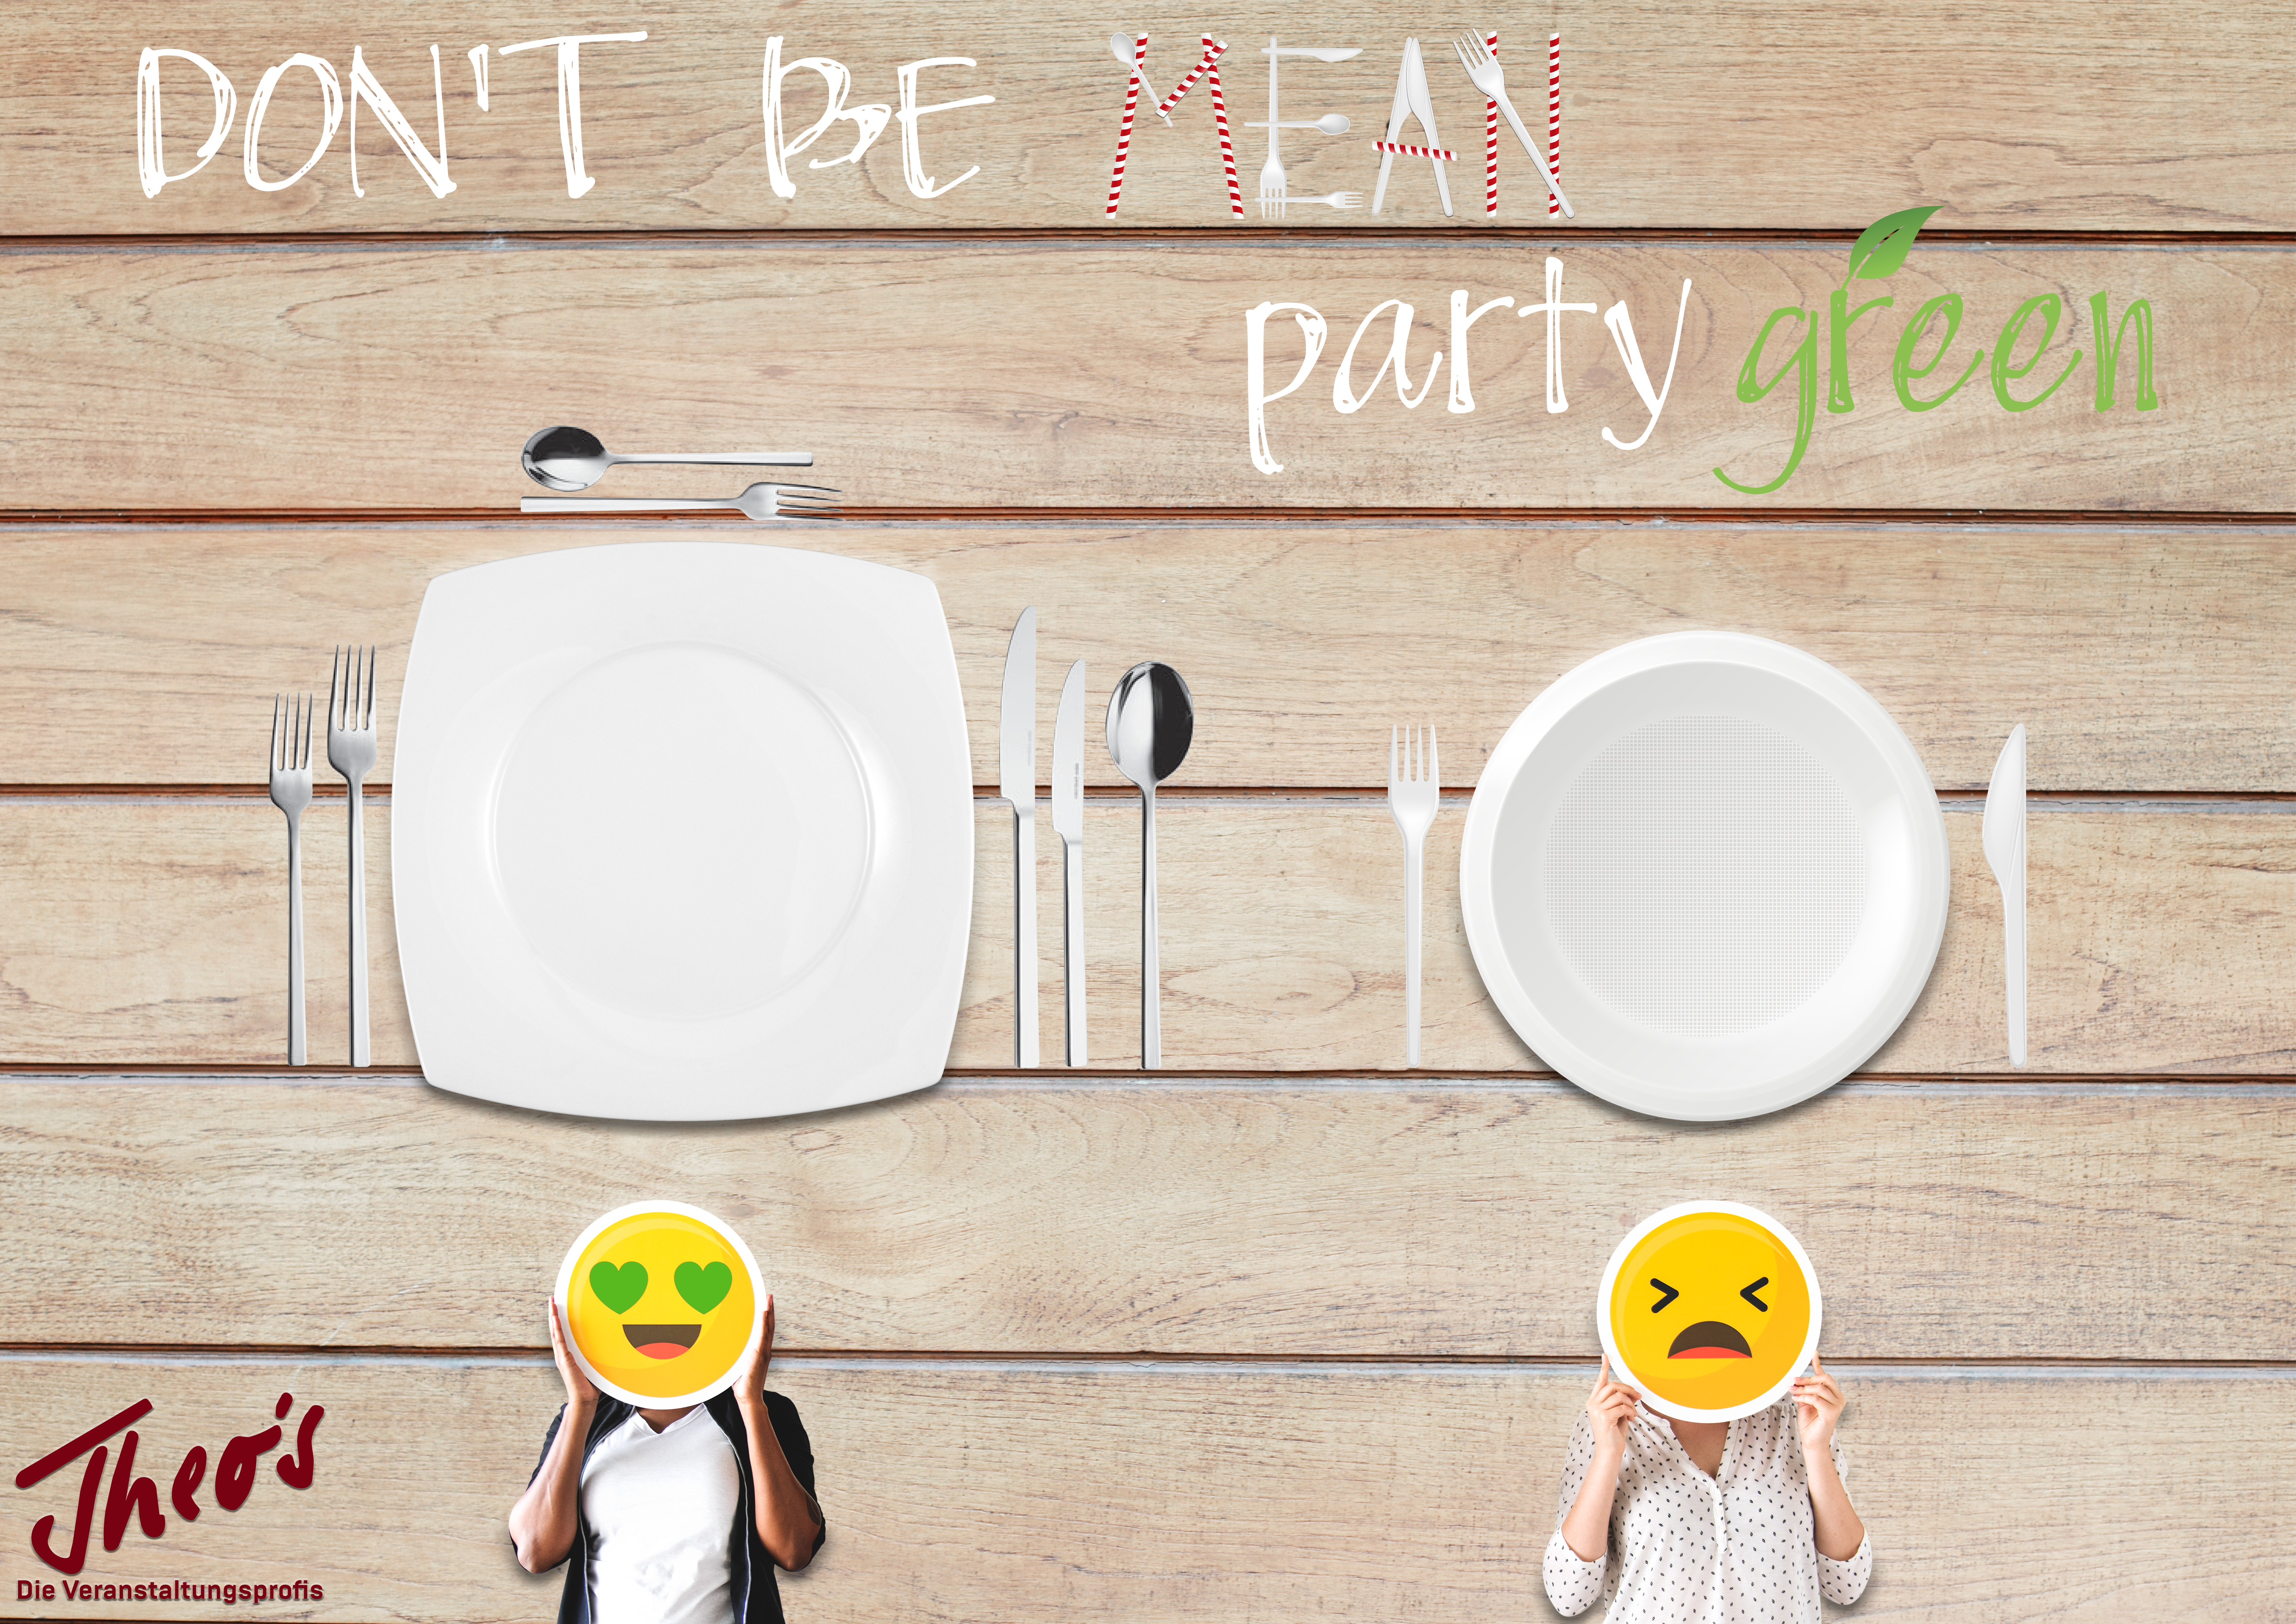 Don't be mean – party green! post thumbnail